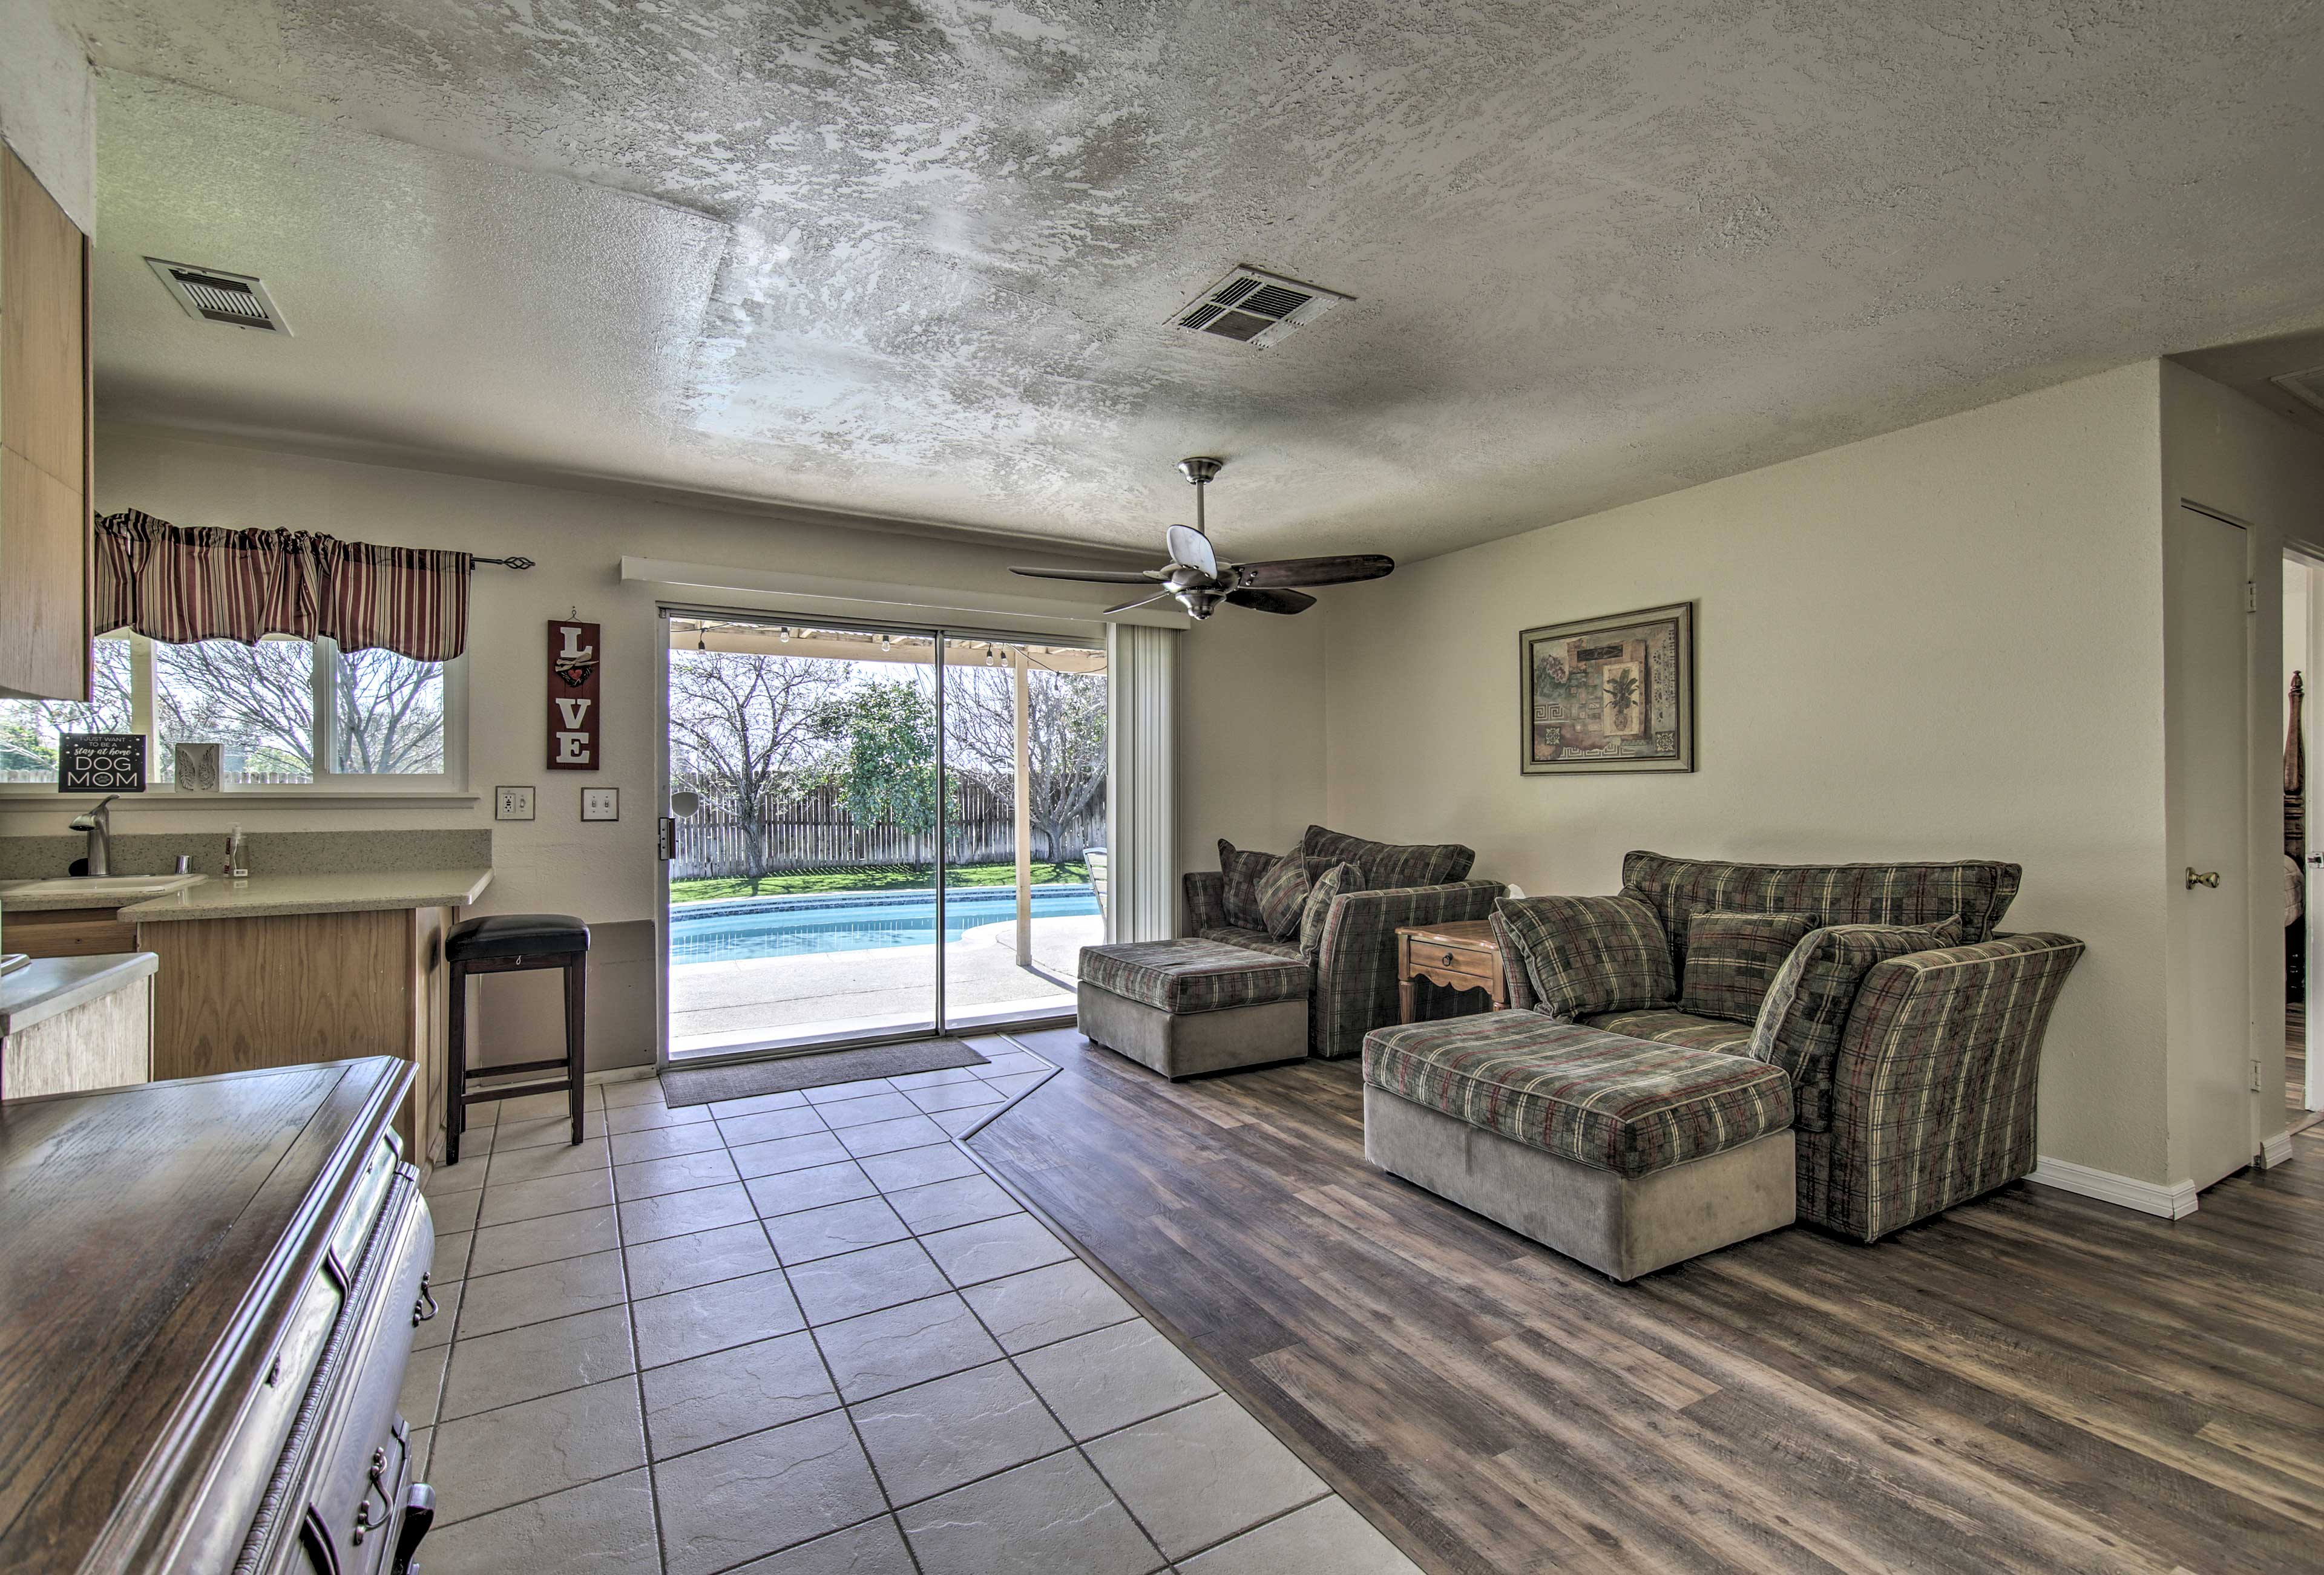 Open the sliding glass doors and let the breeze blow in!